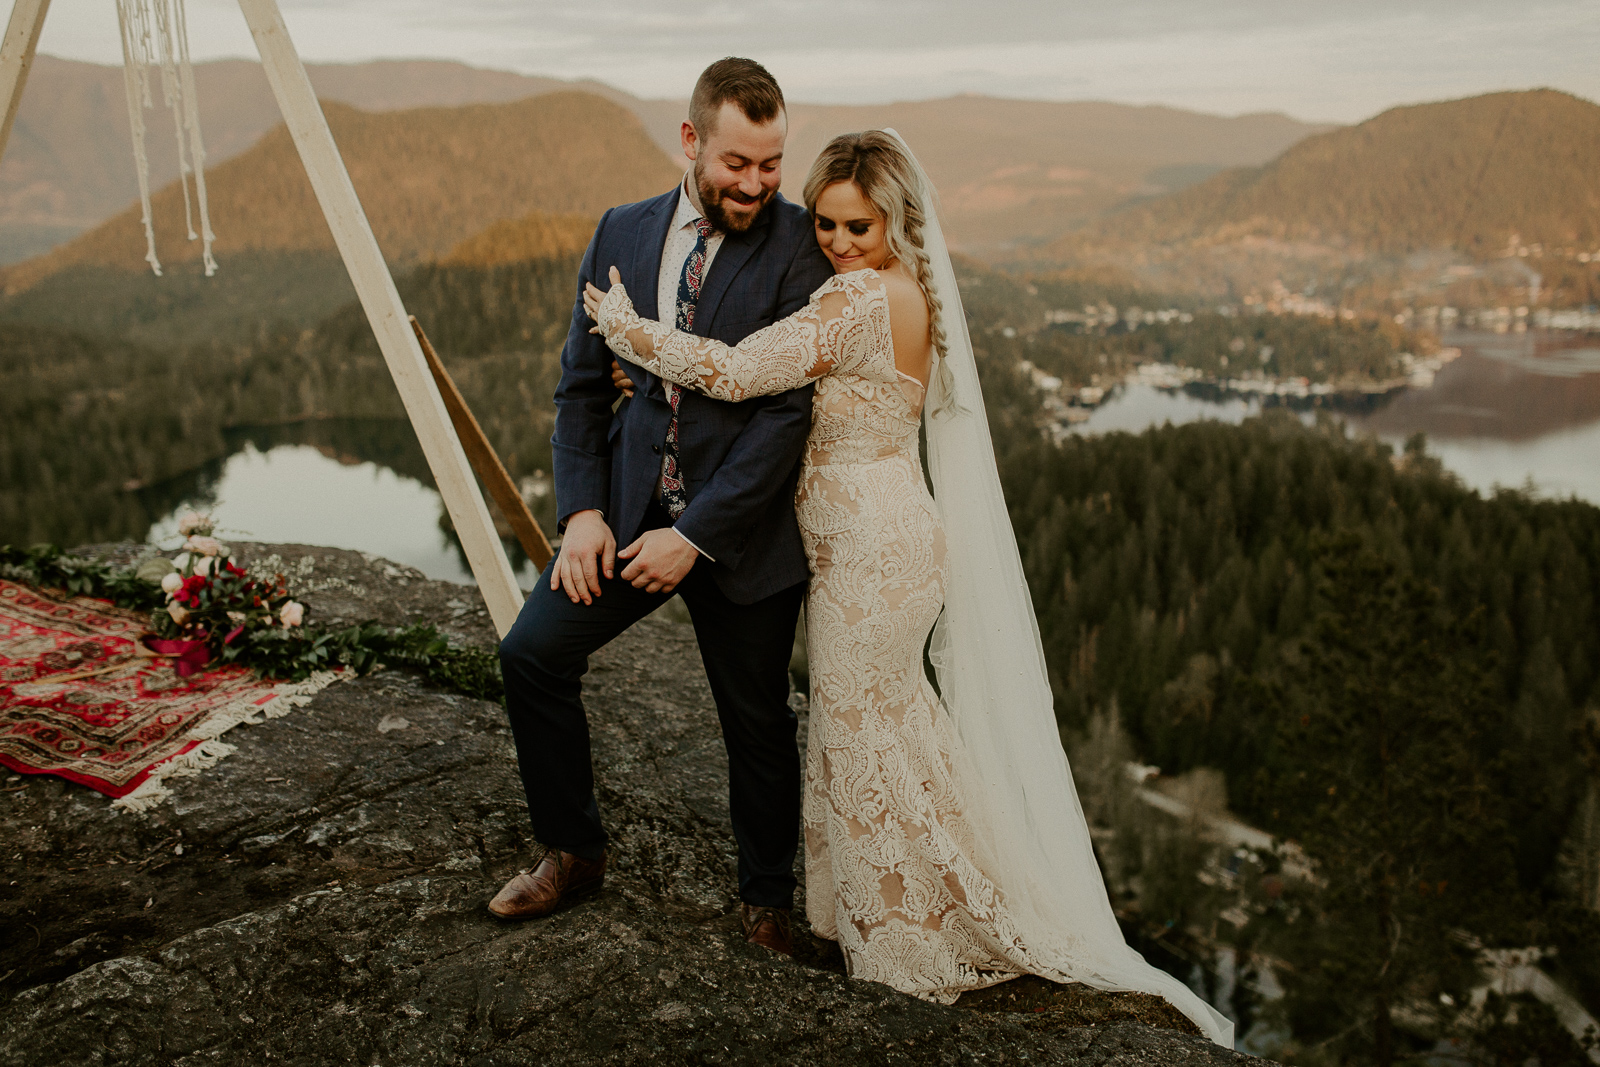 Luke Lambertson Photo_BritishColumbia_Canada_AdventurousCouple_Elopement_IMG-8452.jpg